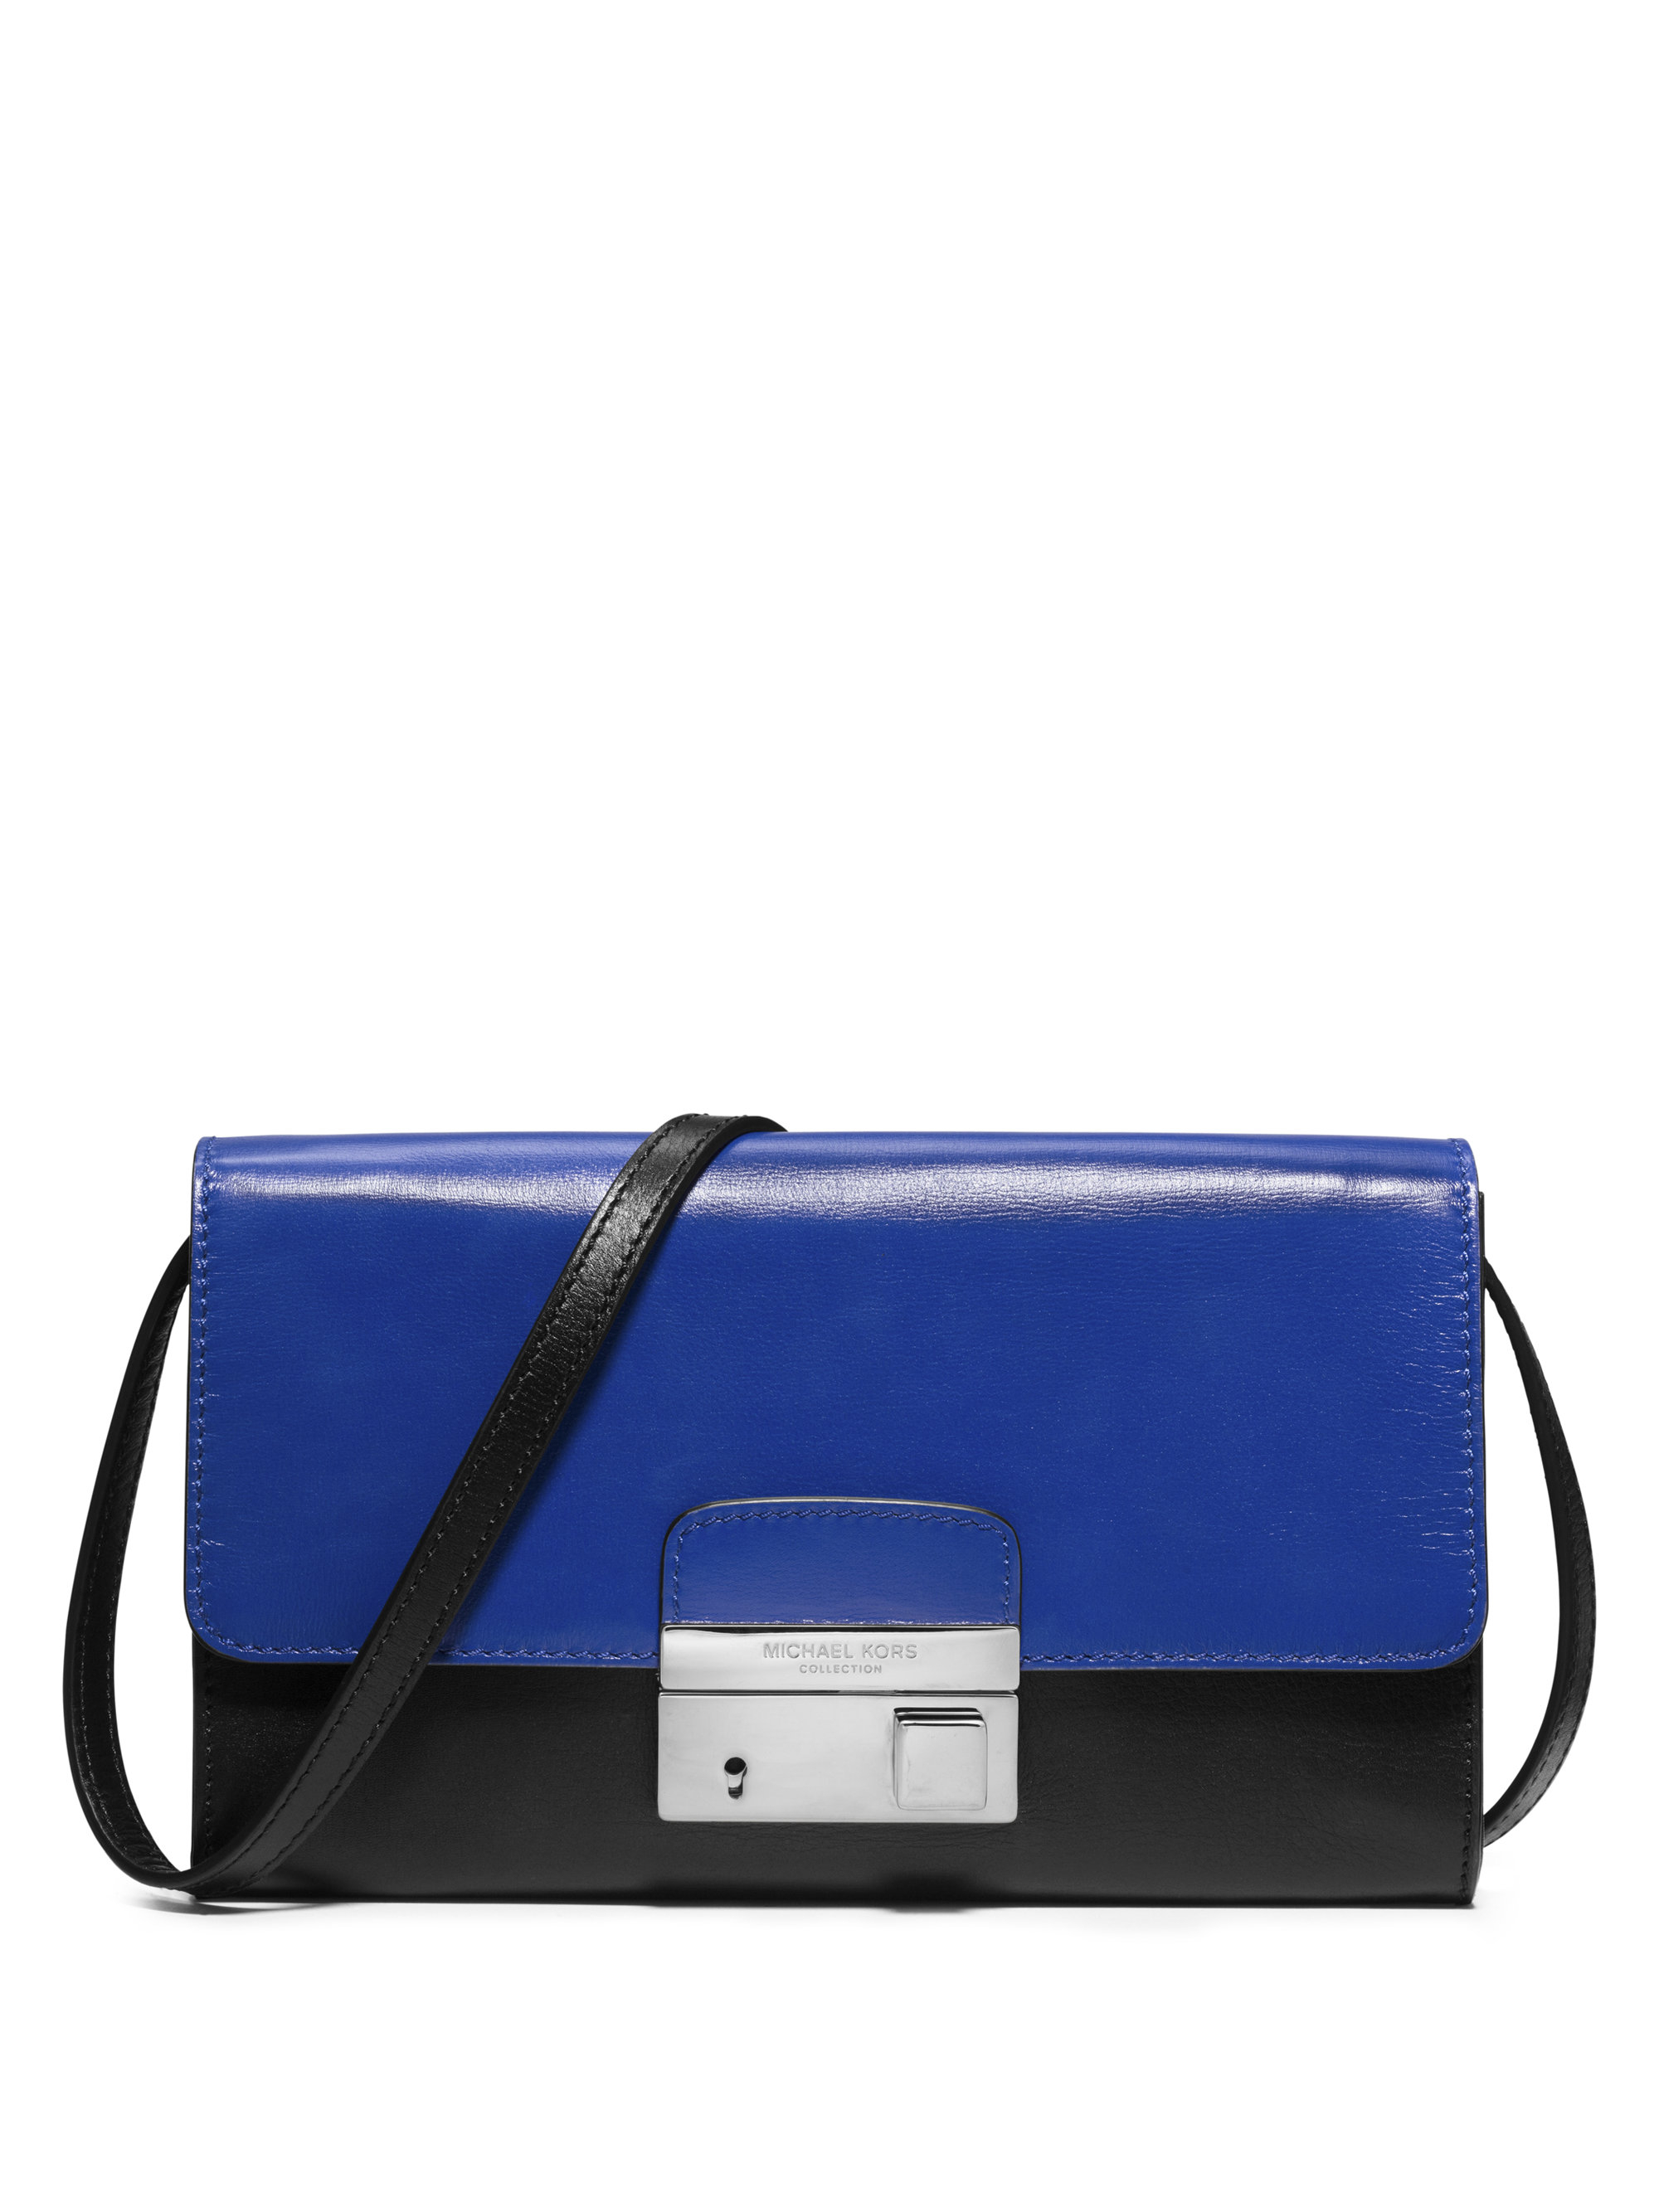 aedeb64a738297 ... Metallic Lyst; Michael kors Gia Two-tone Leather Convertible Clutch in  Blue